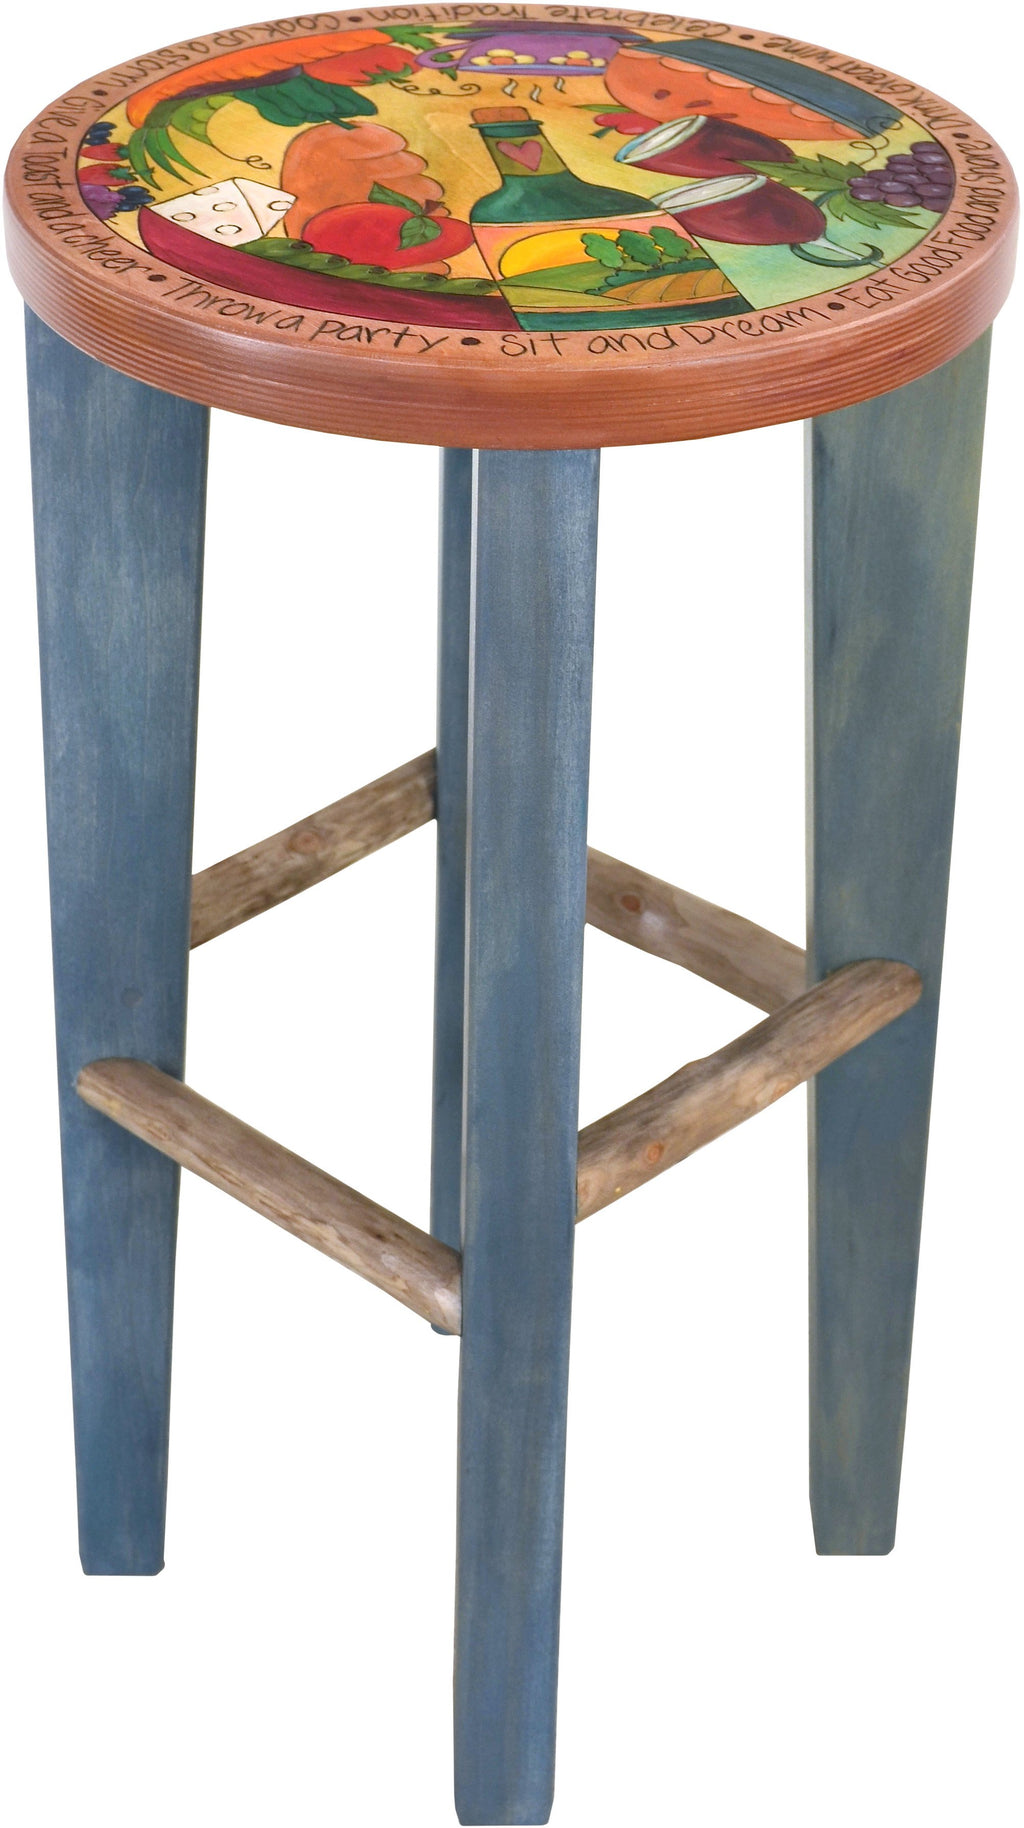 Round Stool –  Banquet themed stool with bright colors and natural birch supports